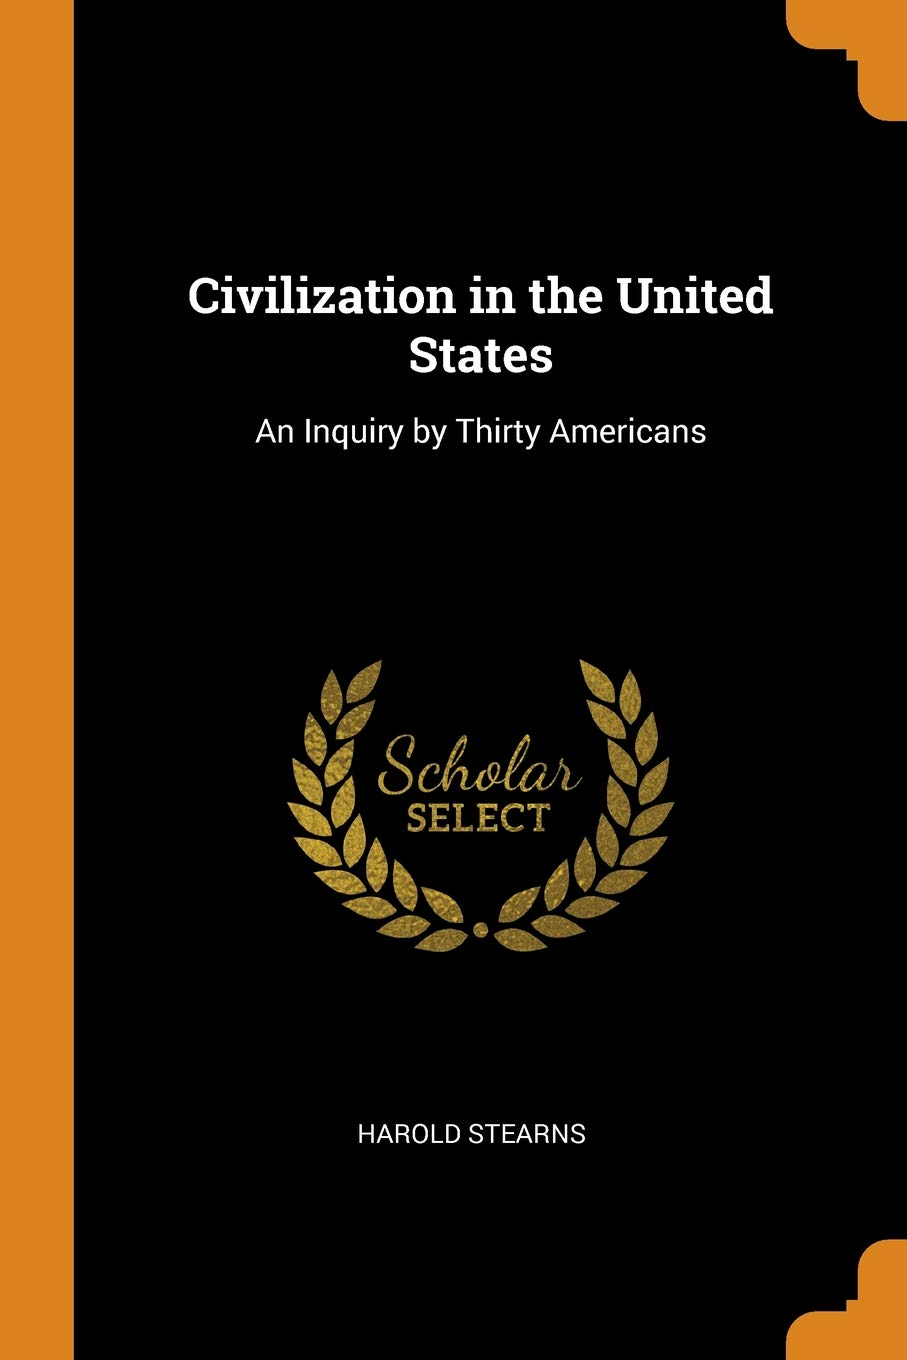 Civilization in the United States: An Inquiry by Thirty Americans: Harold  Stearns: 9780341902713: Amazon.com: Books